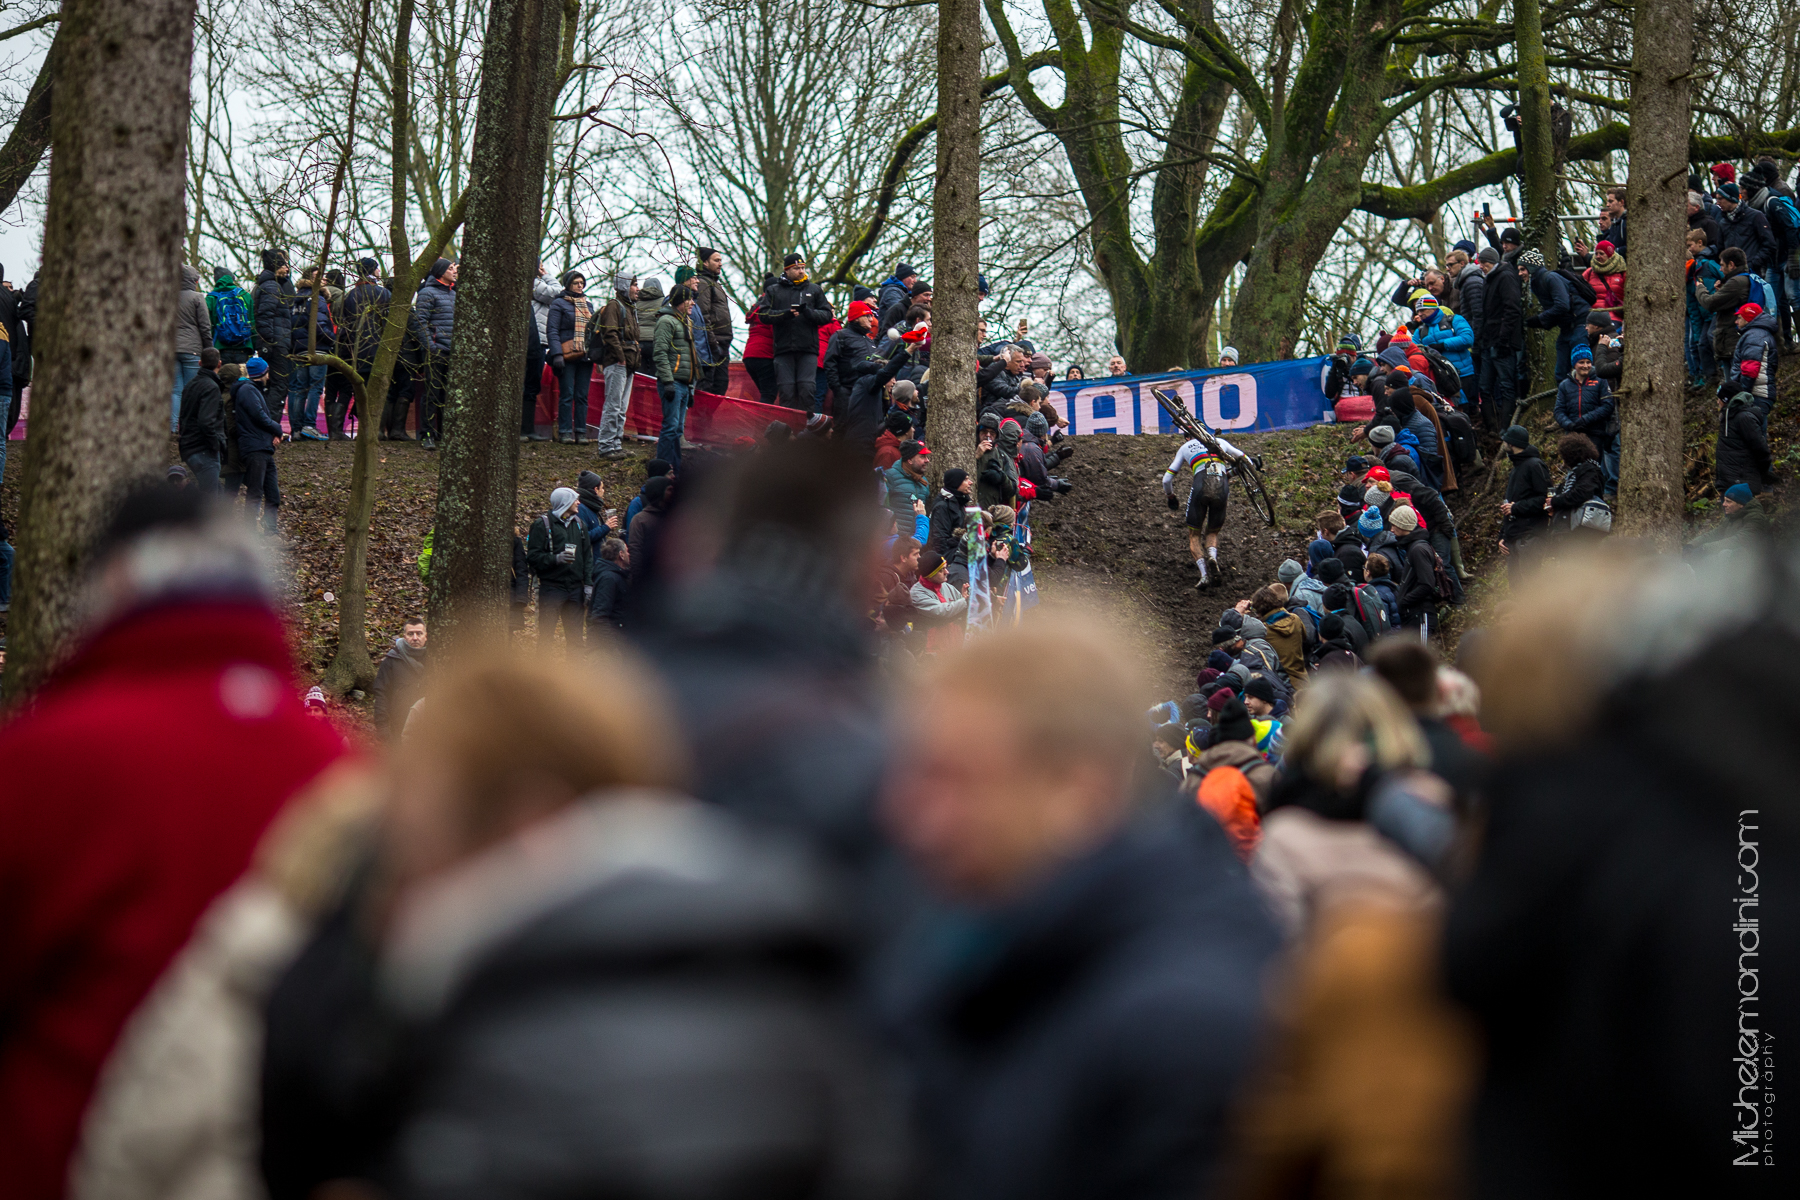 Wout Van Aert leads the crowded world cup of Namur - Ph: Michele Mondini